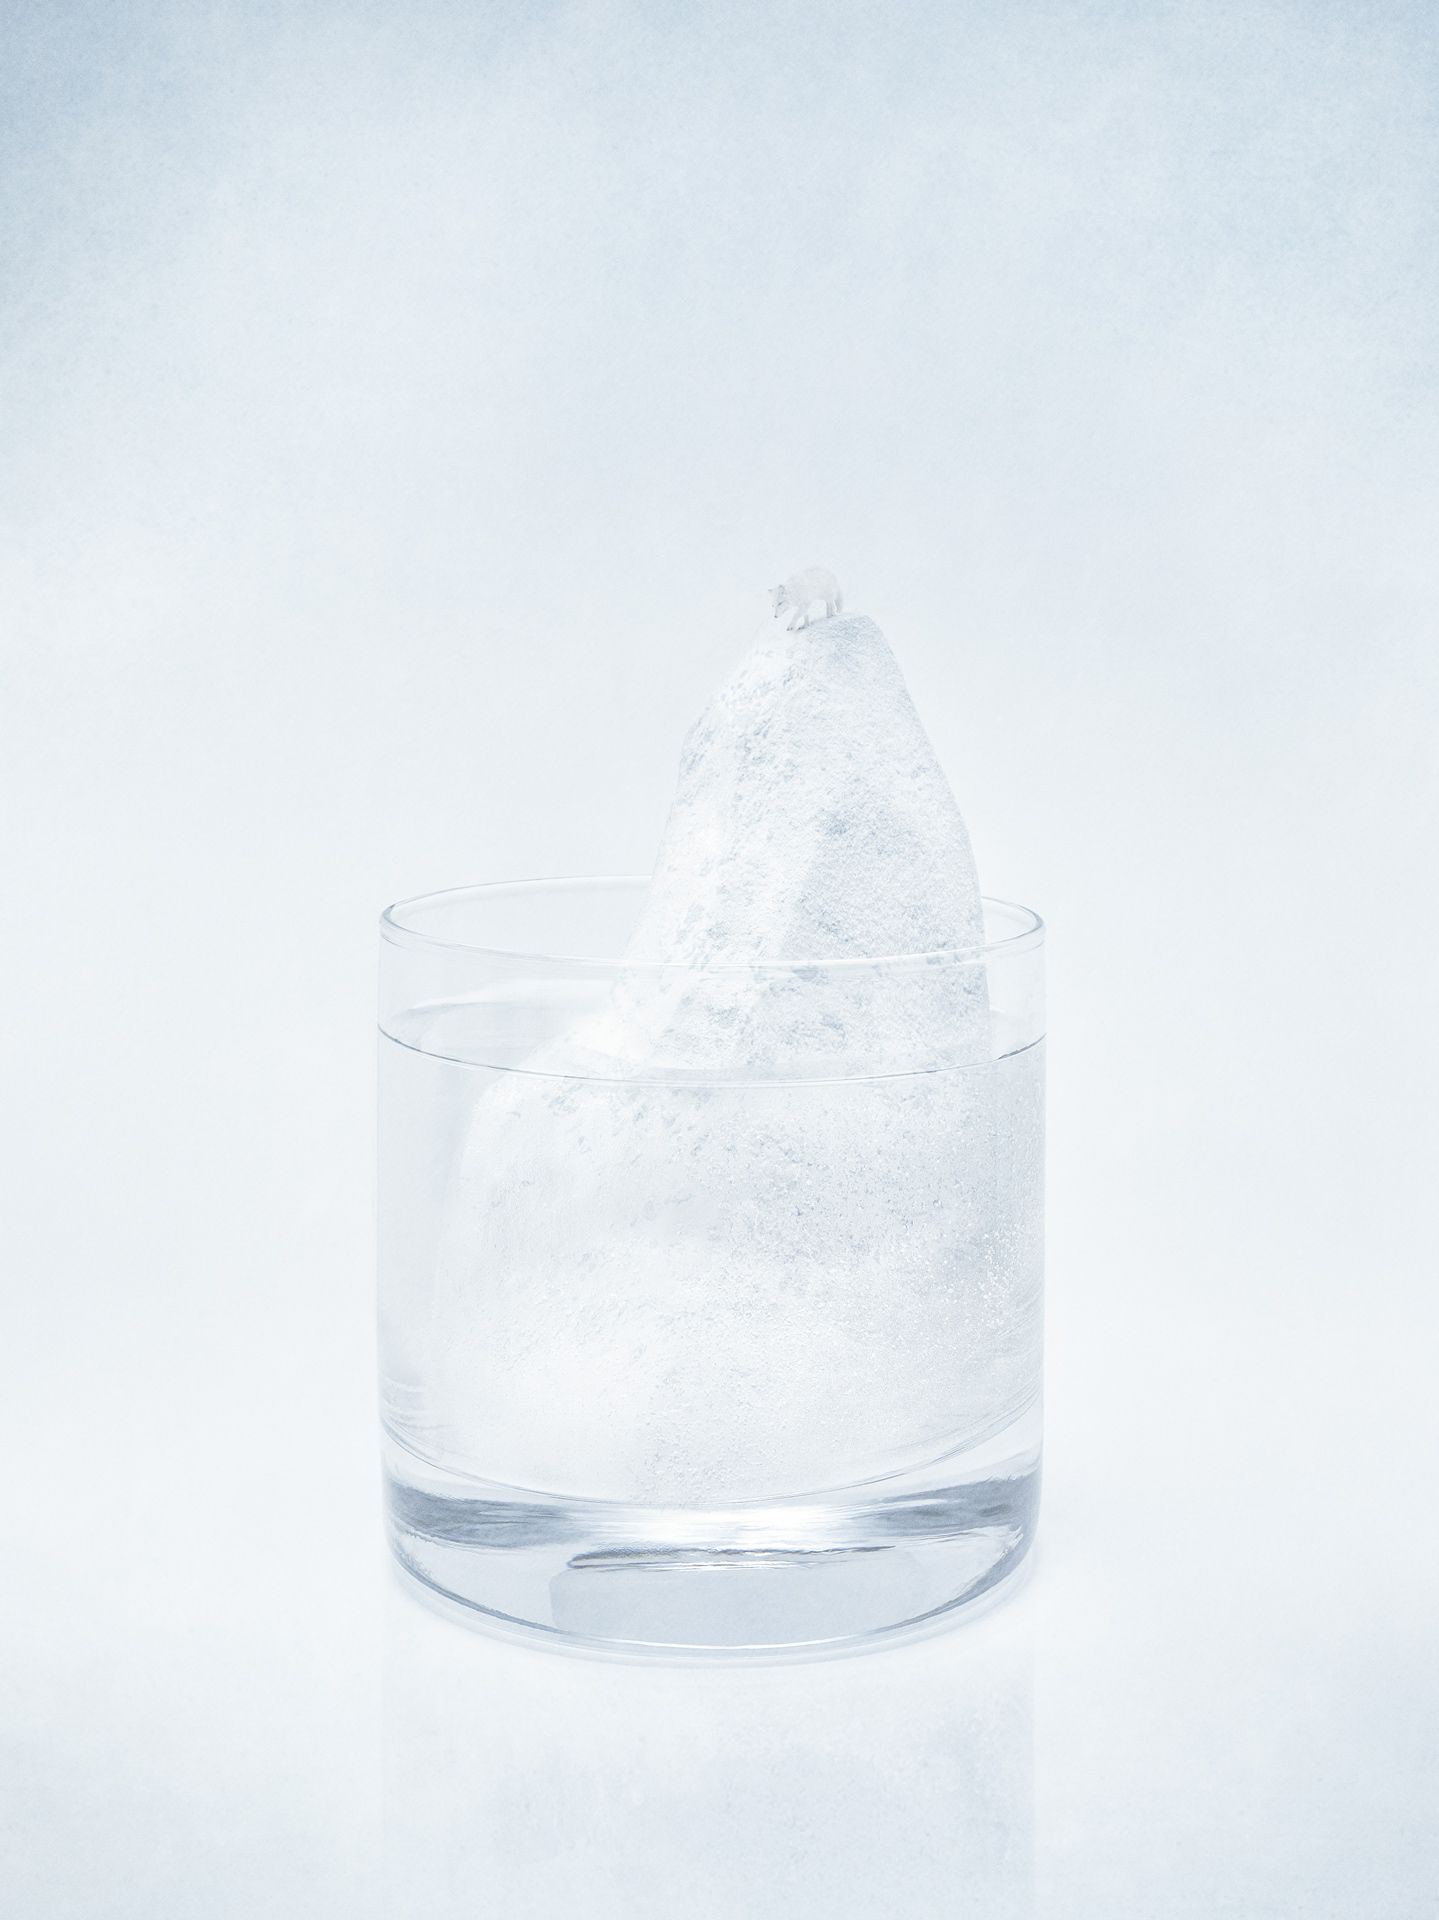 glass of alcohol with miniature scenery of tall iceberg with white arctic fox at the top on white background by Mathieu Levesque